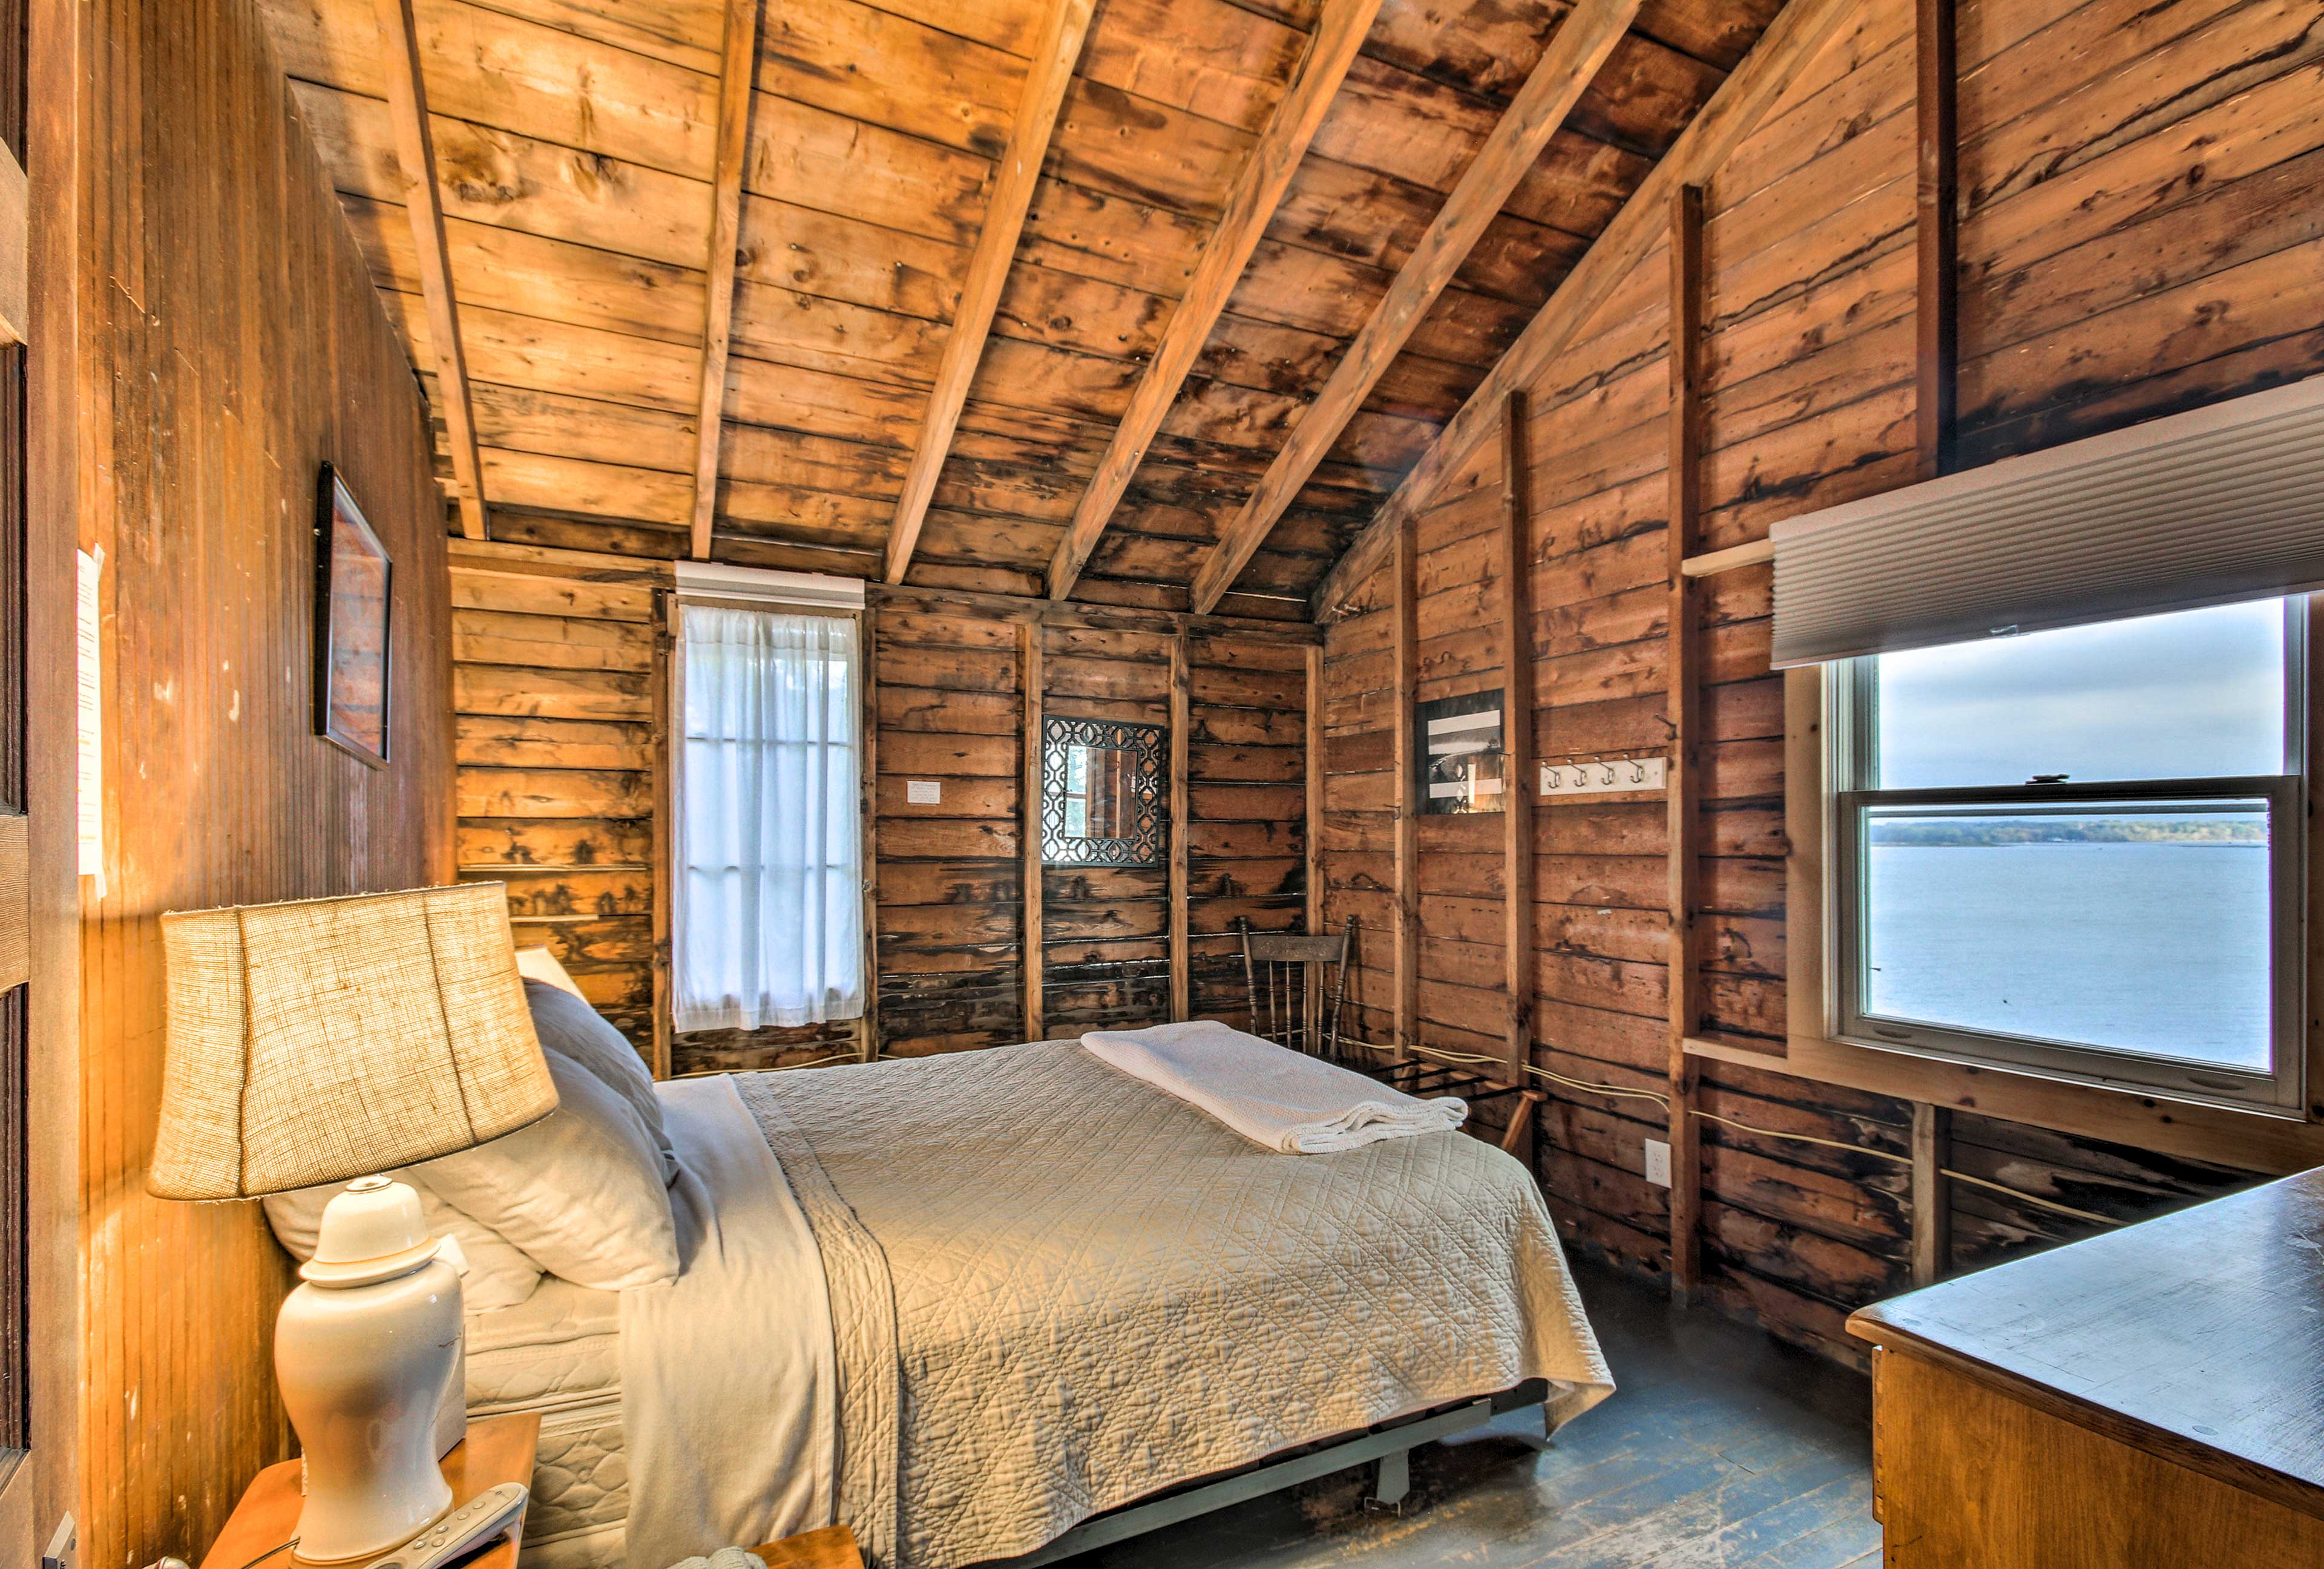 The 1st upstairs bedroom, one of 2 queen bedrooms, boasts a beautiful lake view.